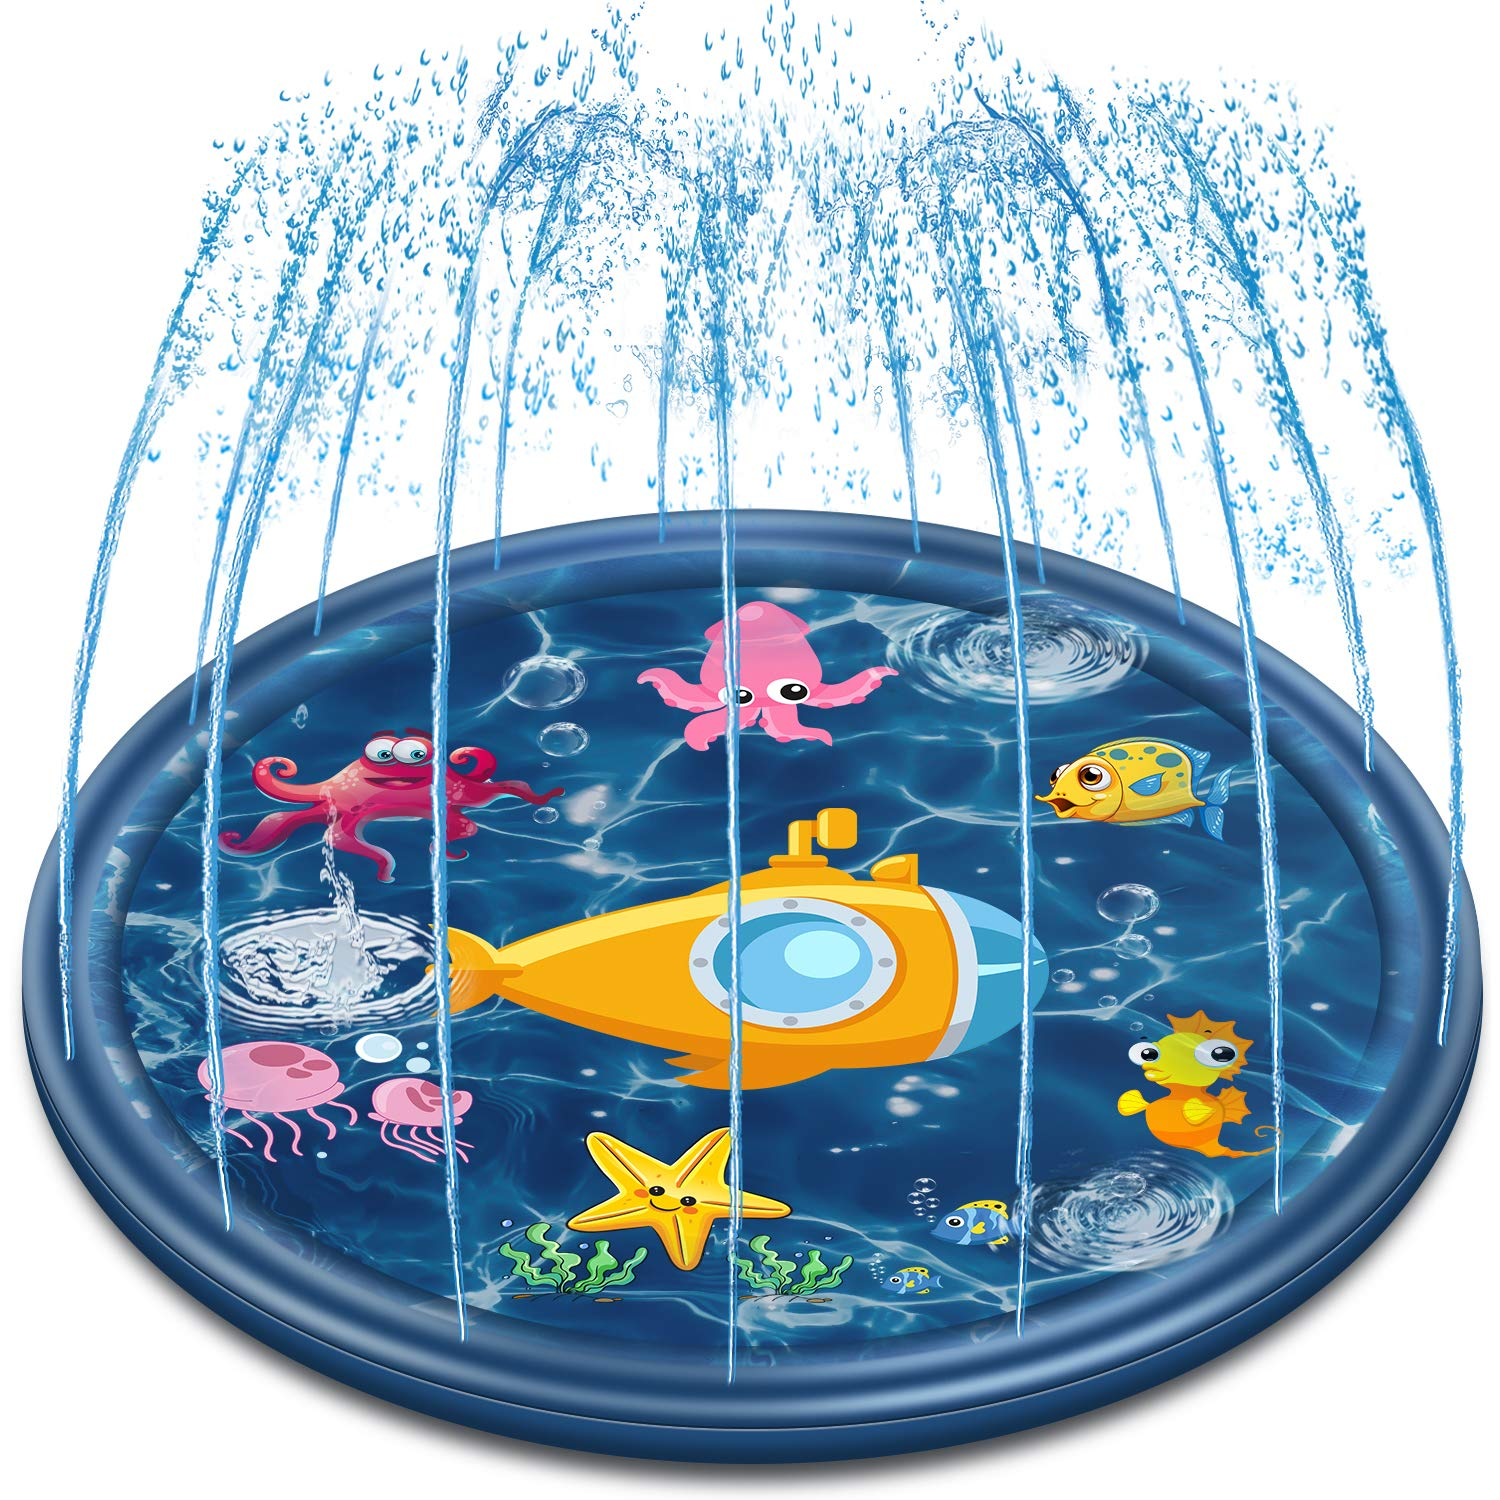 Neteast Outdoor Sprinkler Mat Water Toys for Kids and Toddlers, 68'' Outside Splash Pad Water Toys for 1 2 3 4 5 6 7 8 Year Old Boys and Girls Baby by Neteast